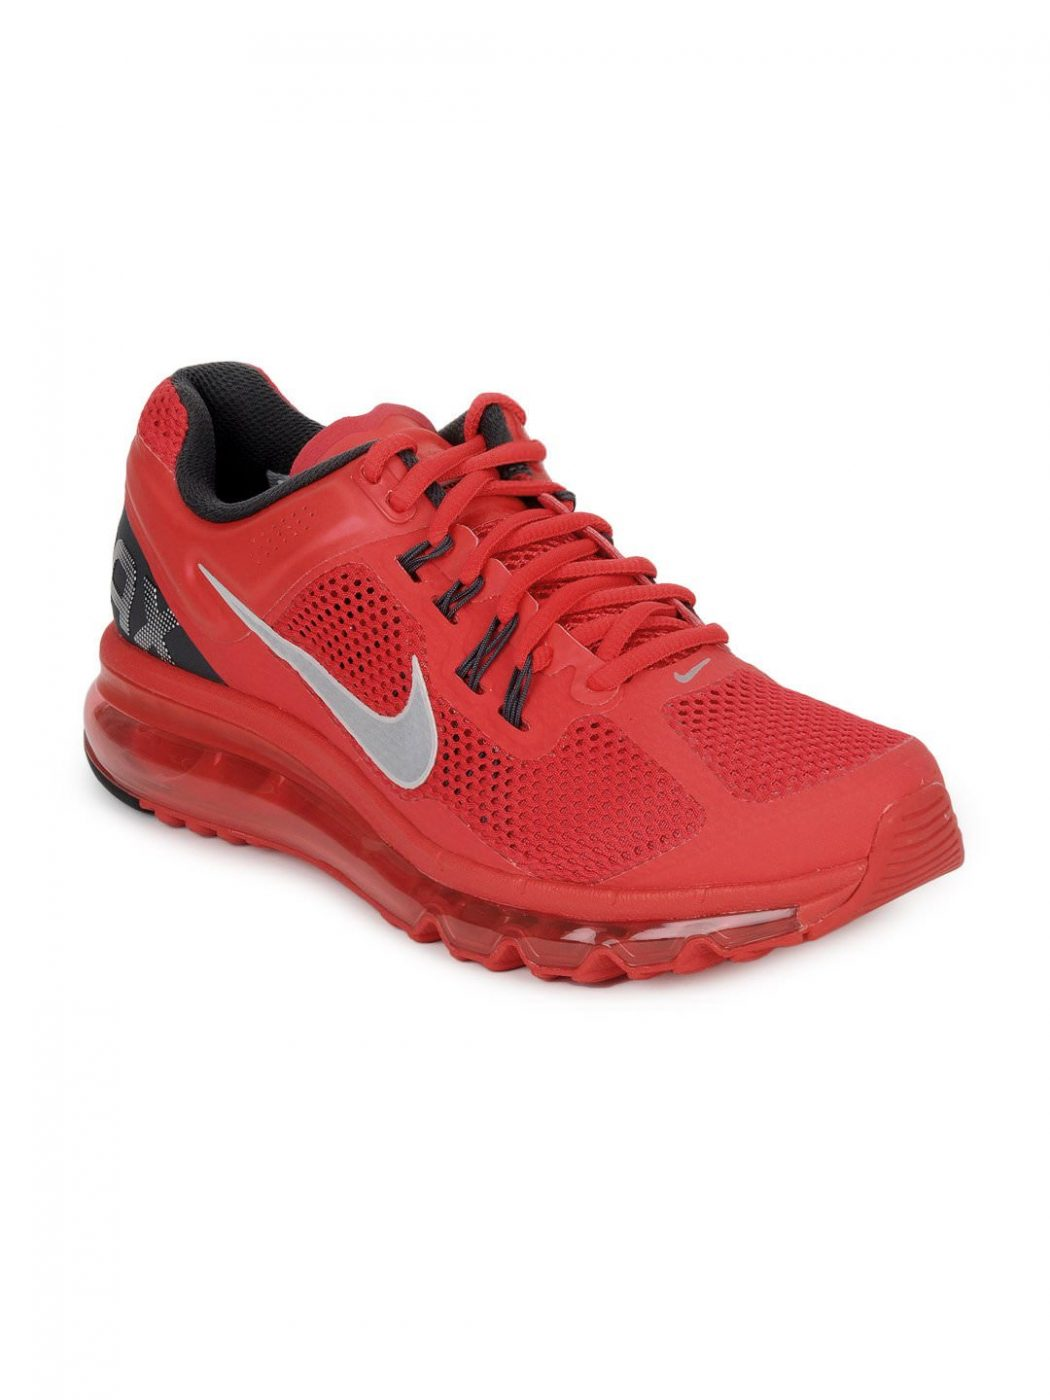 Nike-Men-Red-AIR-MAX-2013-Sports-Shoes_25b08f8e56d422edd4712953658578c0_images_1080_1440_mini Outdoor Corporate Events and The Importance of Having Canopy Tents